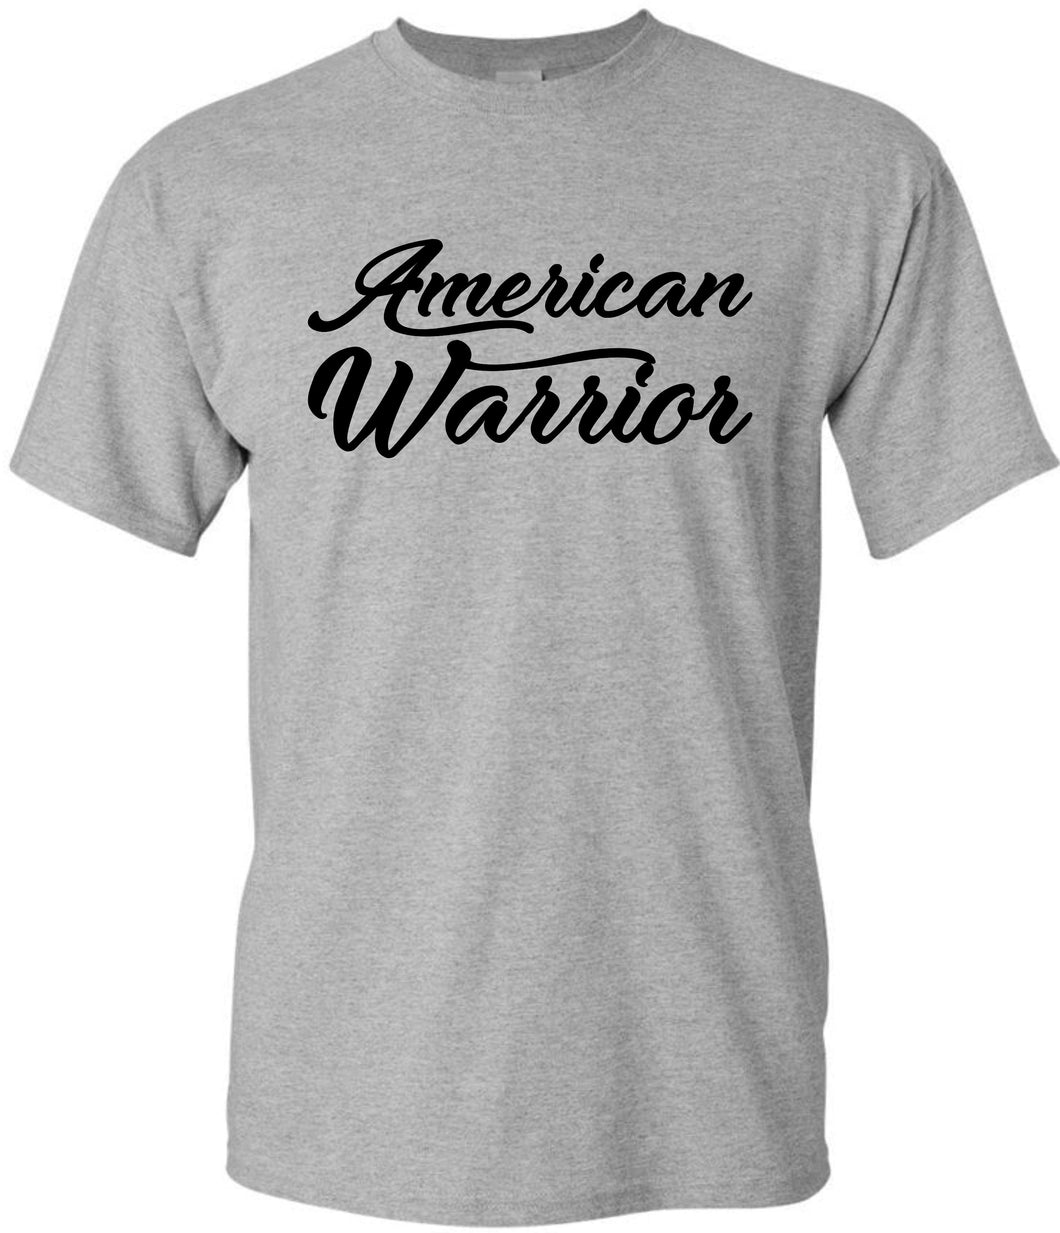 American Warrior - Short Sleeve T shirt